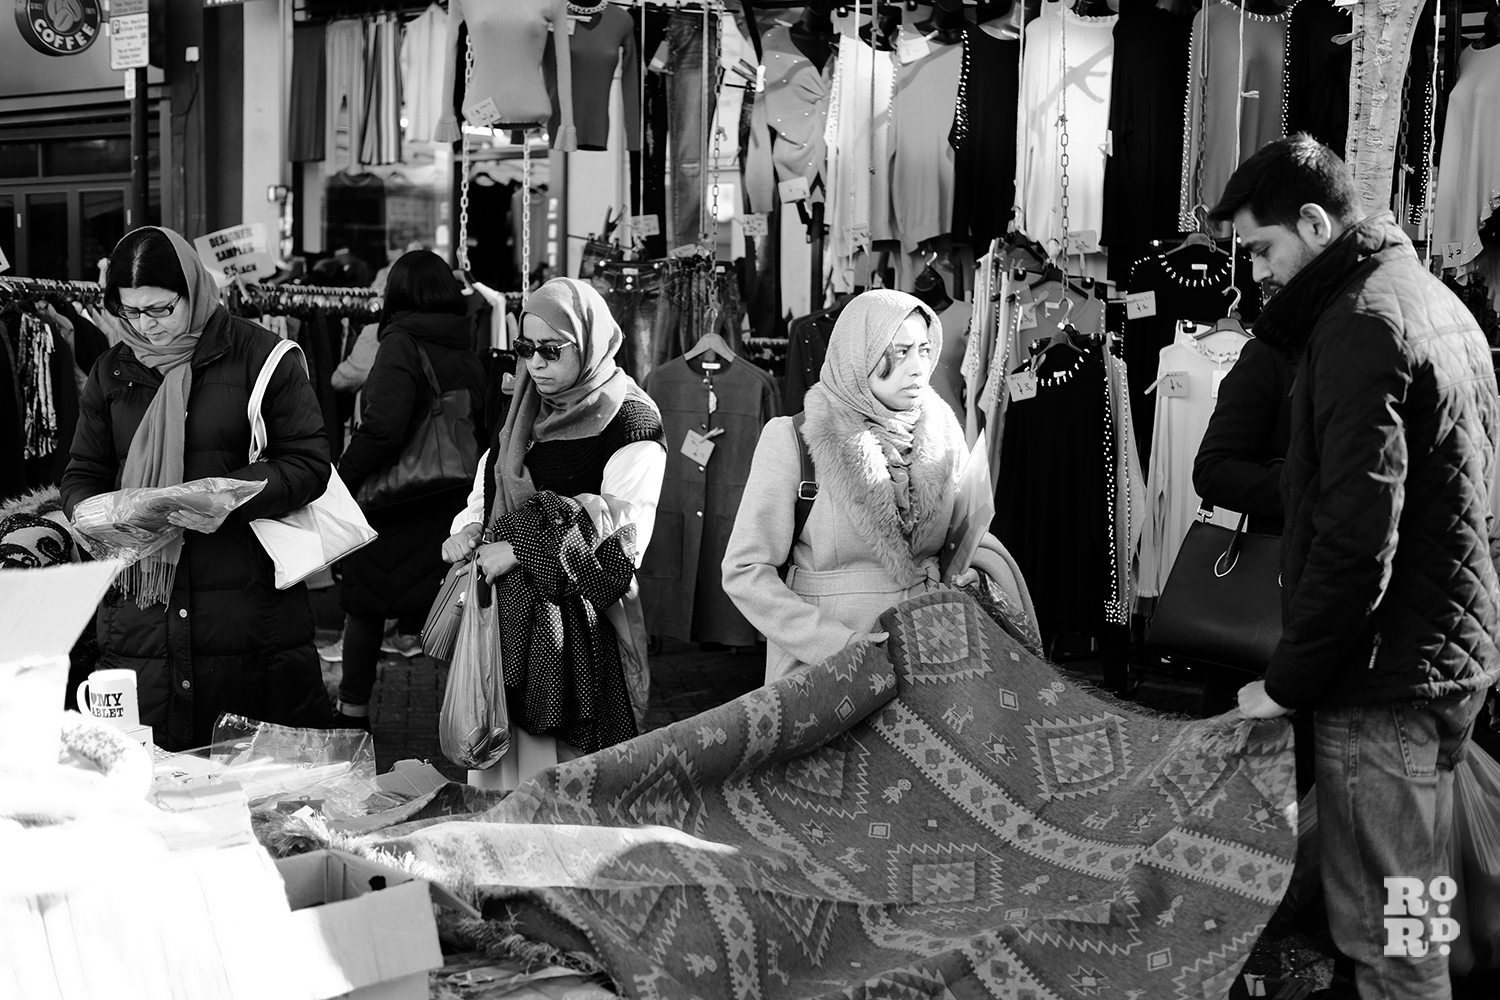 Roman Road Market stall selling rugs and homeware with Asian woman shoppers